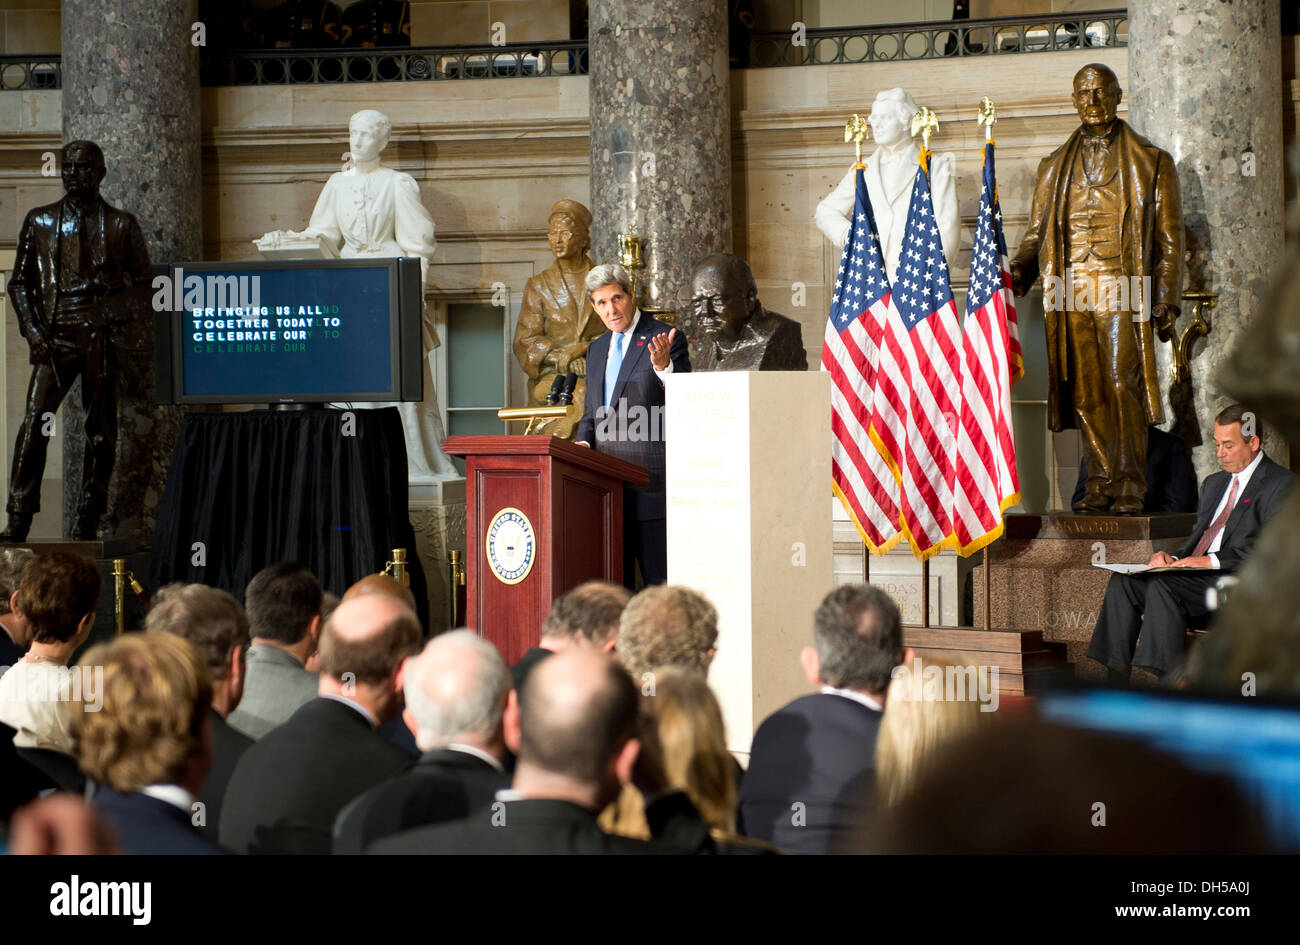 U.S. Secretary of State John Kerry delivers remarks at the dedication of a bust of Winston Churchill at the U.S. Capitol in Washington, D.C., Oct. 30, 2013. The bust is being placed pursuant to House Resolution 497, which was authored by House Speaker Joh Stock Photo